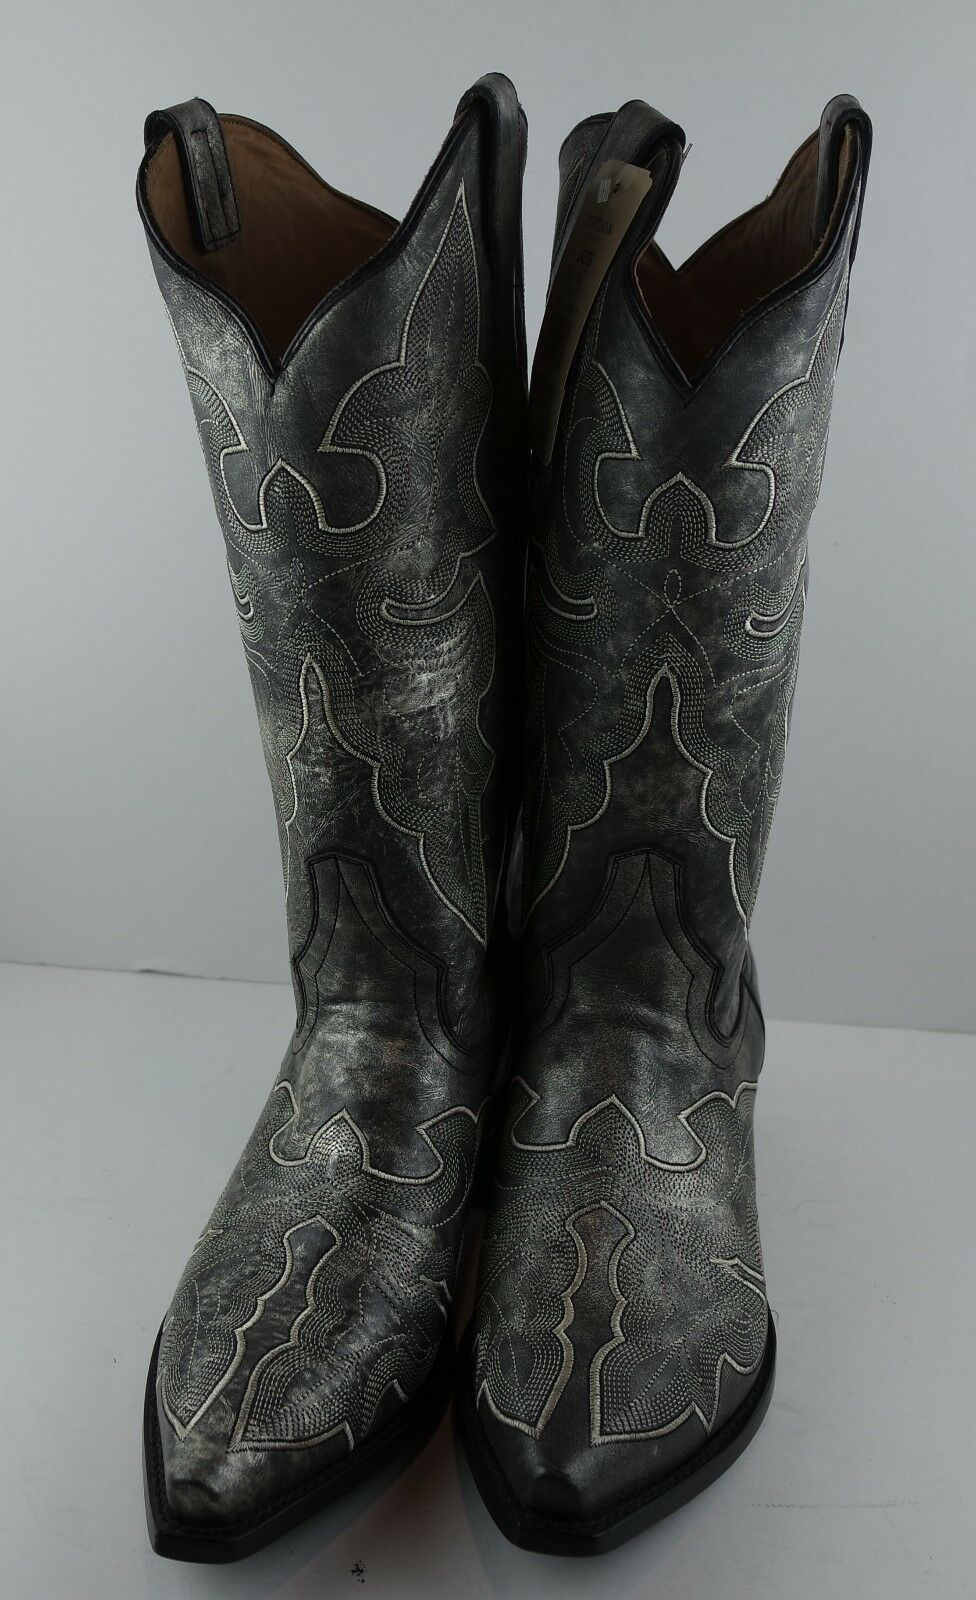 Stetson WESTERN botas para mujer 13  Vintage gris 12-021-6105-0933 GY M